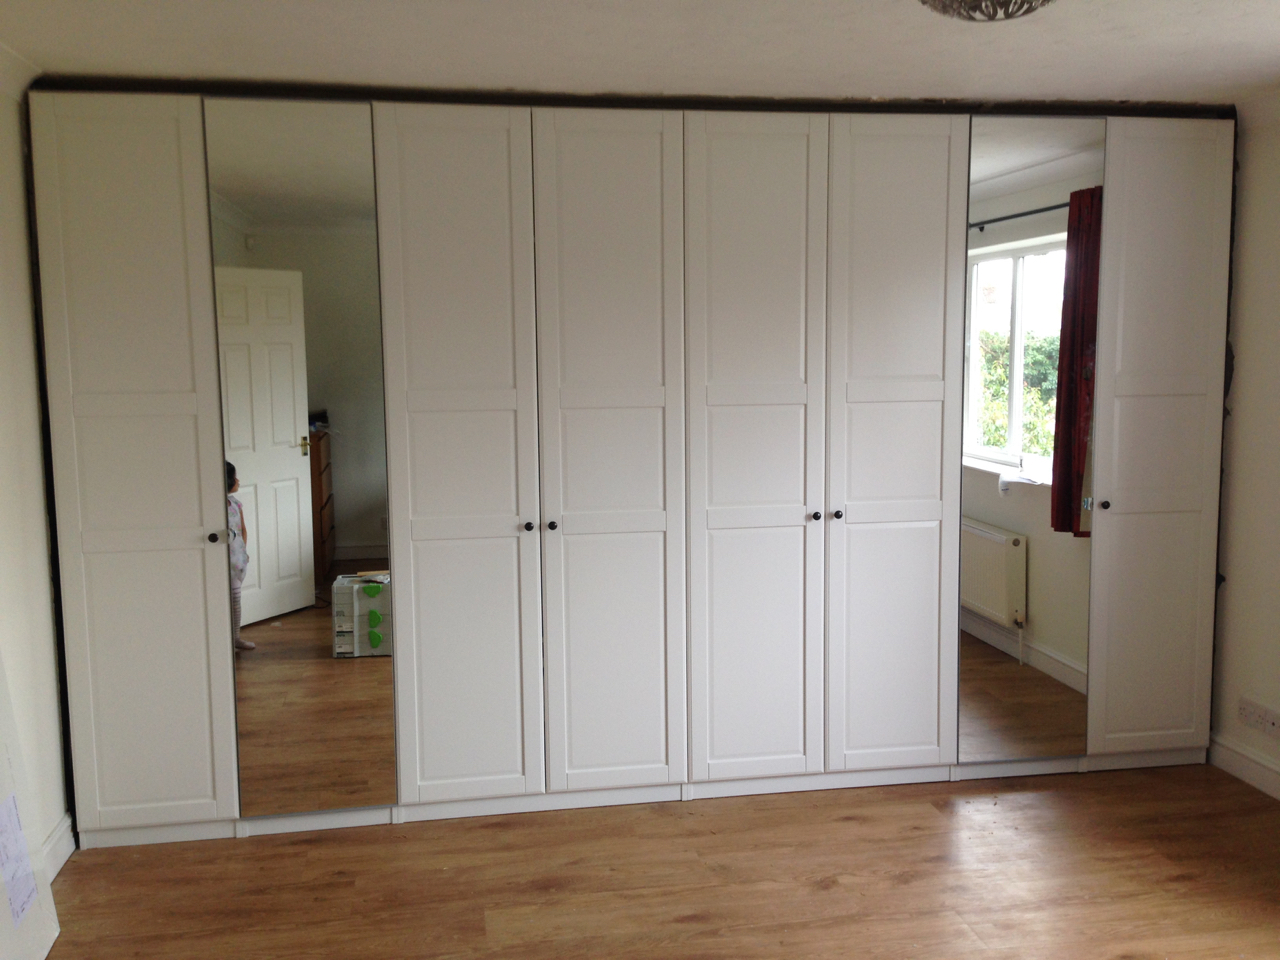 4m run of Ikea PAX hinged wardrobes assembled by www.norwichflatpack.co.uk